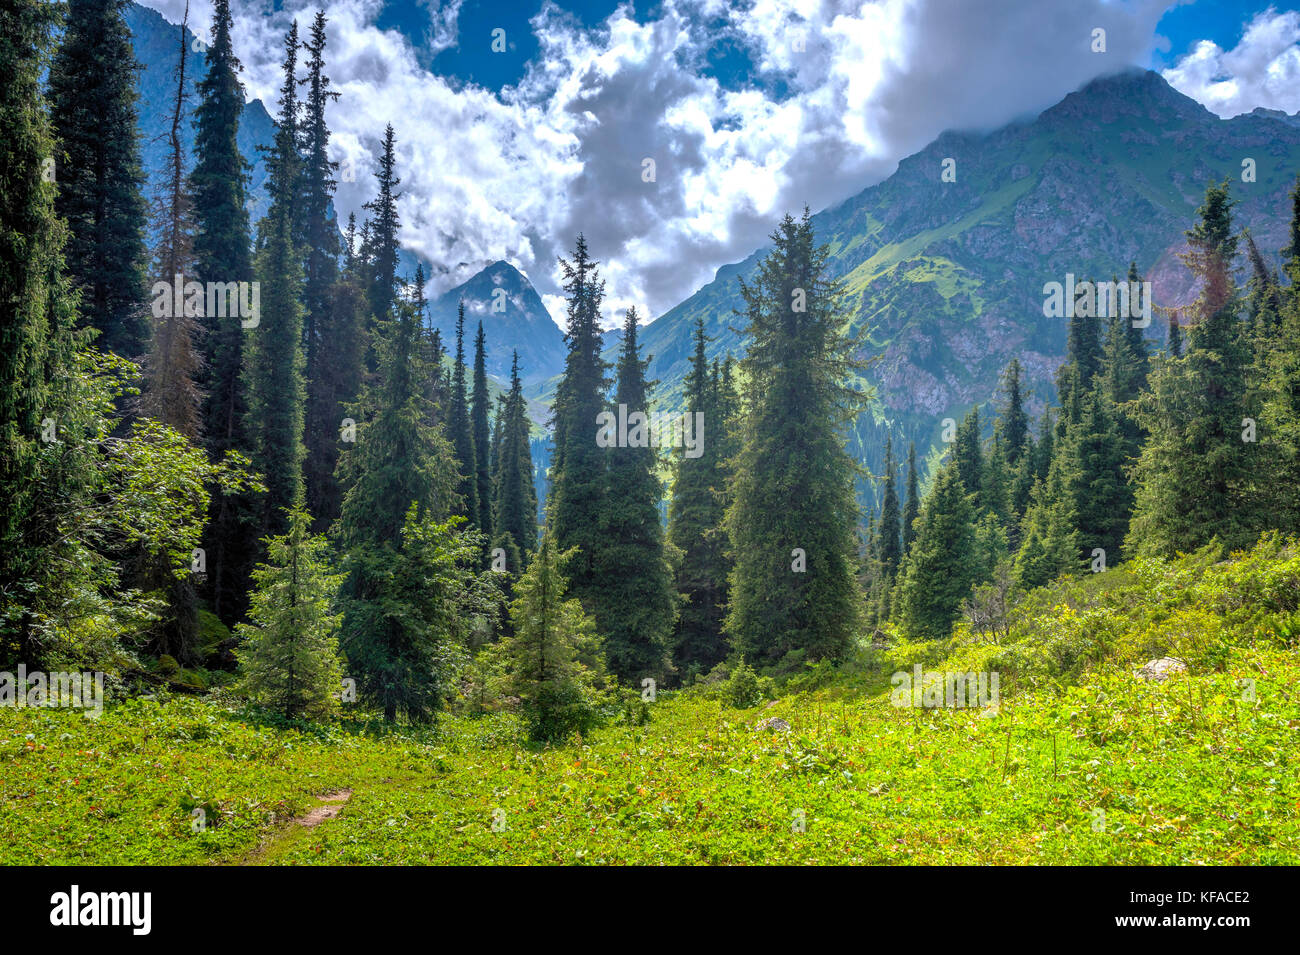 Spruces and mountains in Karakol national park, Kyrgyzstan - Stock Image